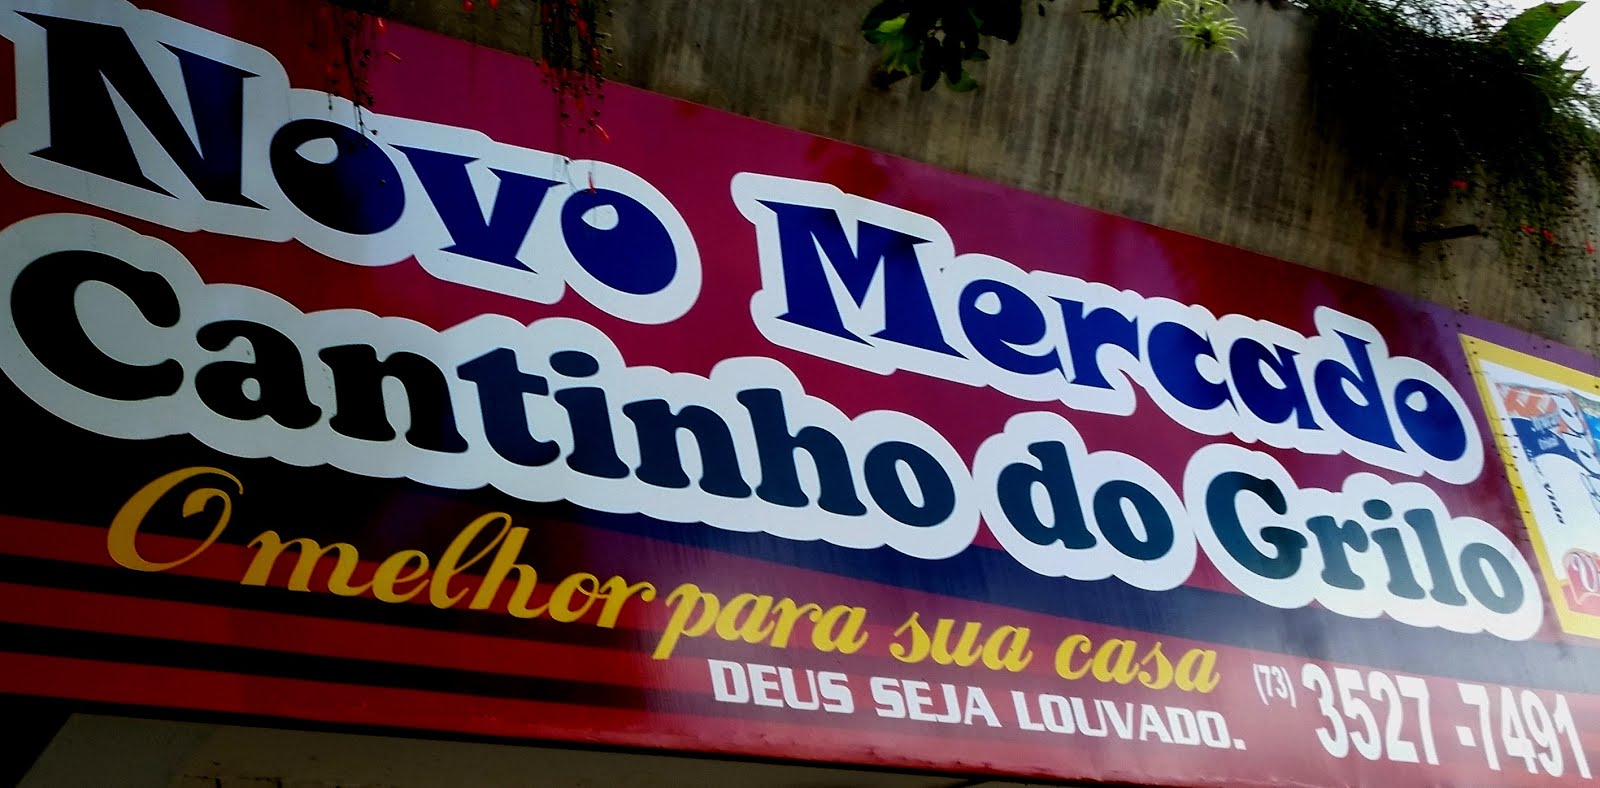 Novo Mercado Cantinho do Grilo